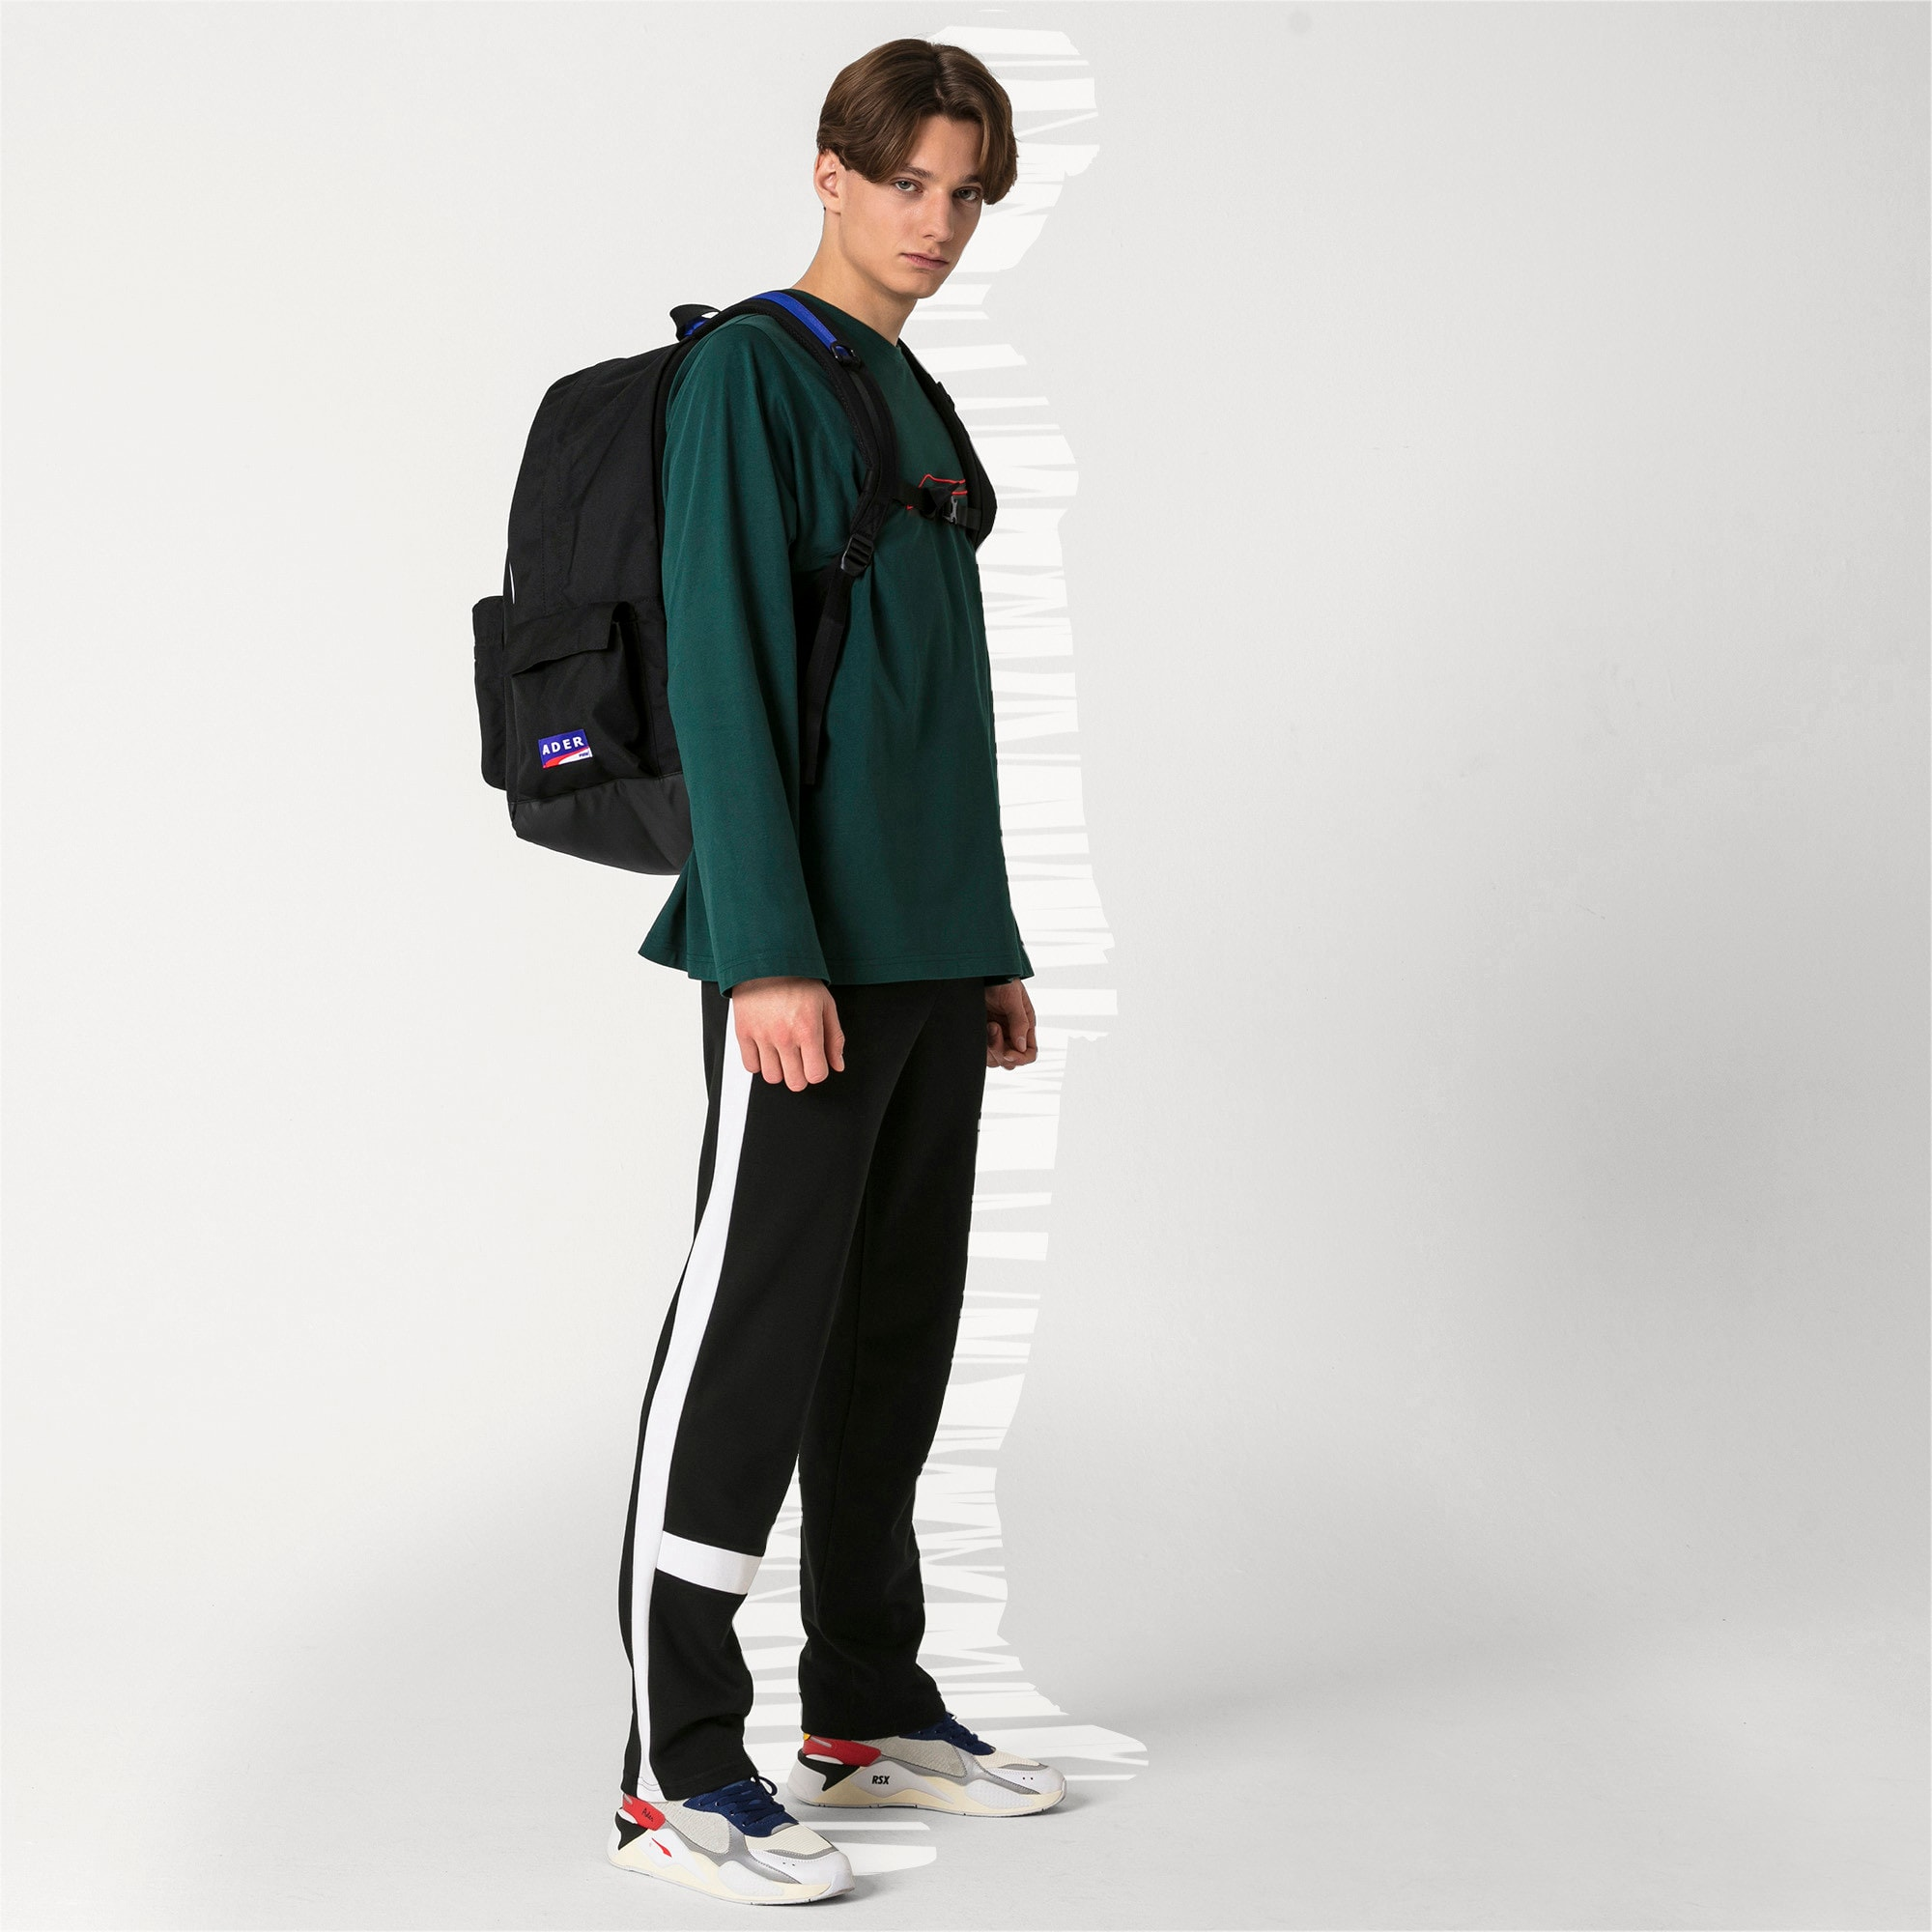 Thumbnail 2 of PUMA x ADER ERROR Rucksack, Puma Black, medium